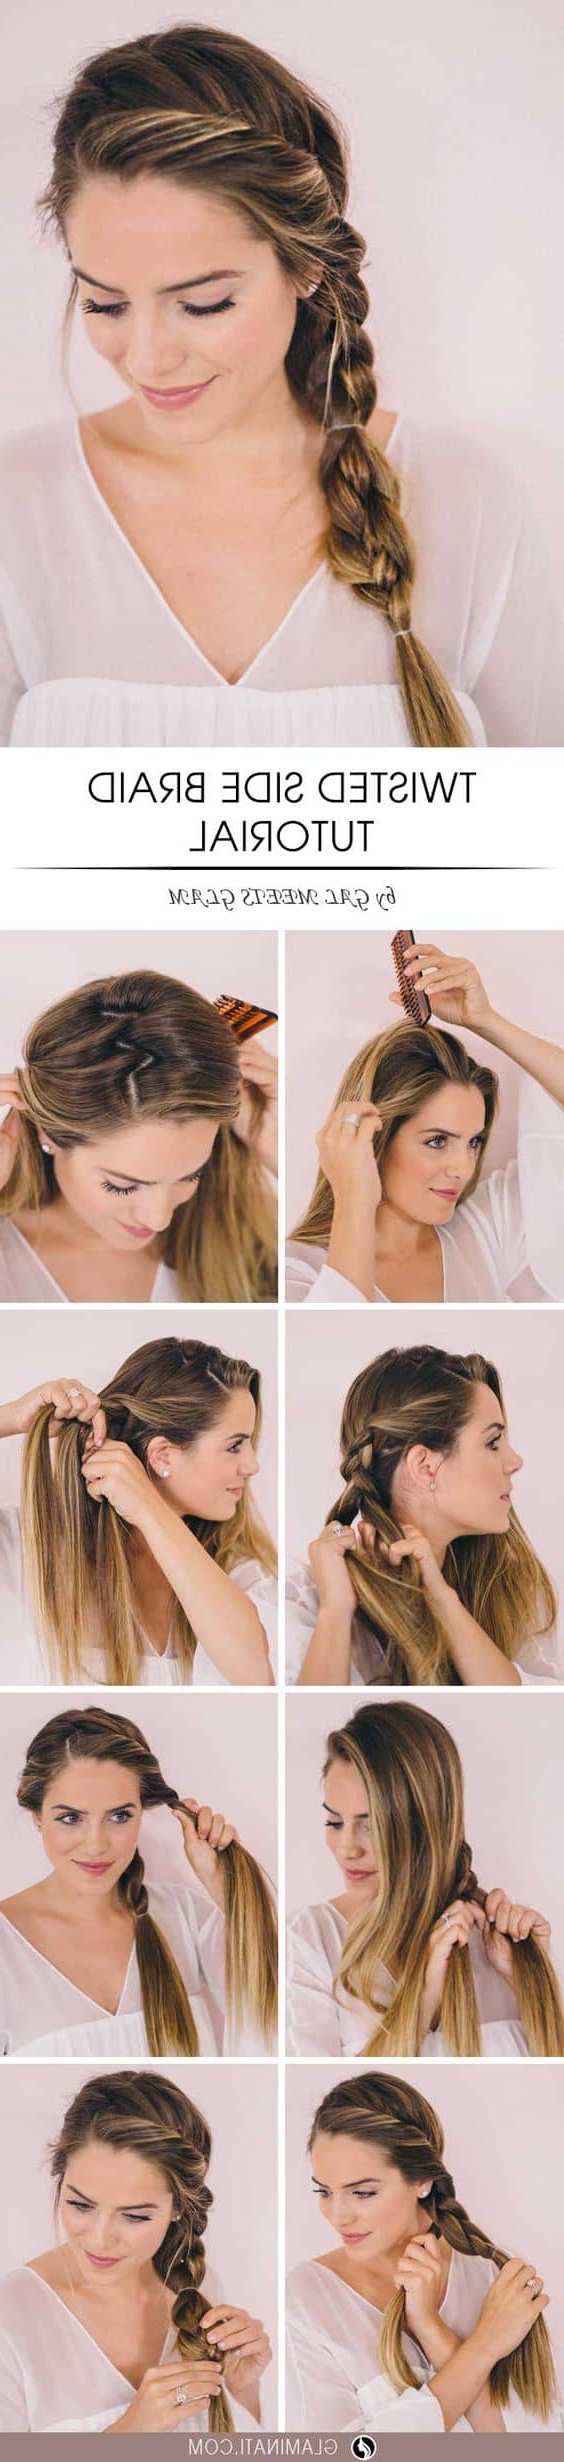 25 Effortless Side Braid Hairstyles To Make You Feel Special Throughout Best And Newest Wide Crown Braided Hairstyles With A Twist (View 3 of 20)